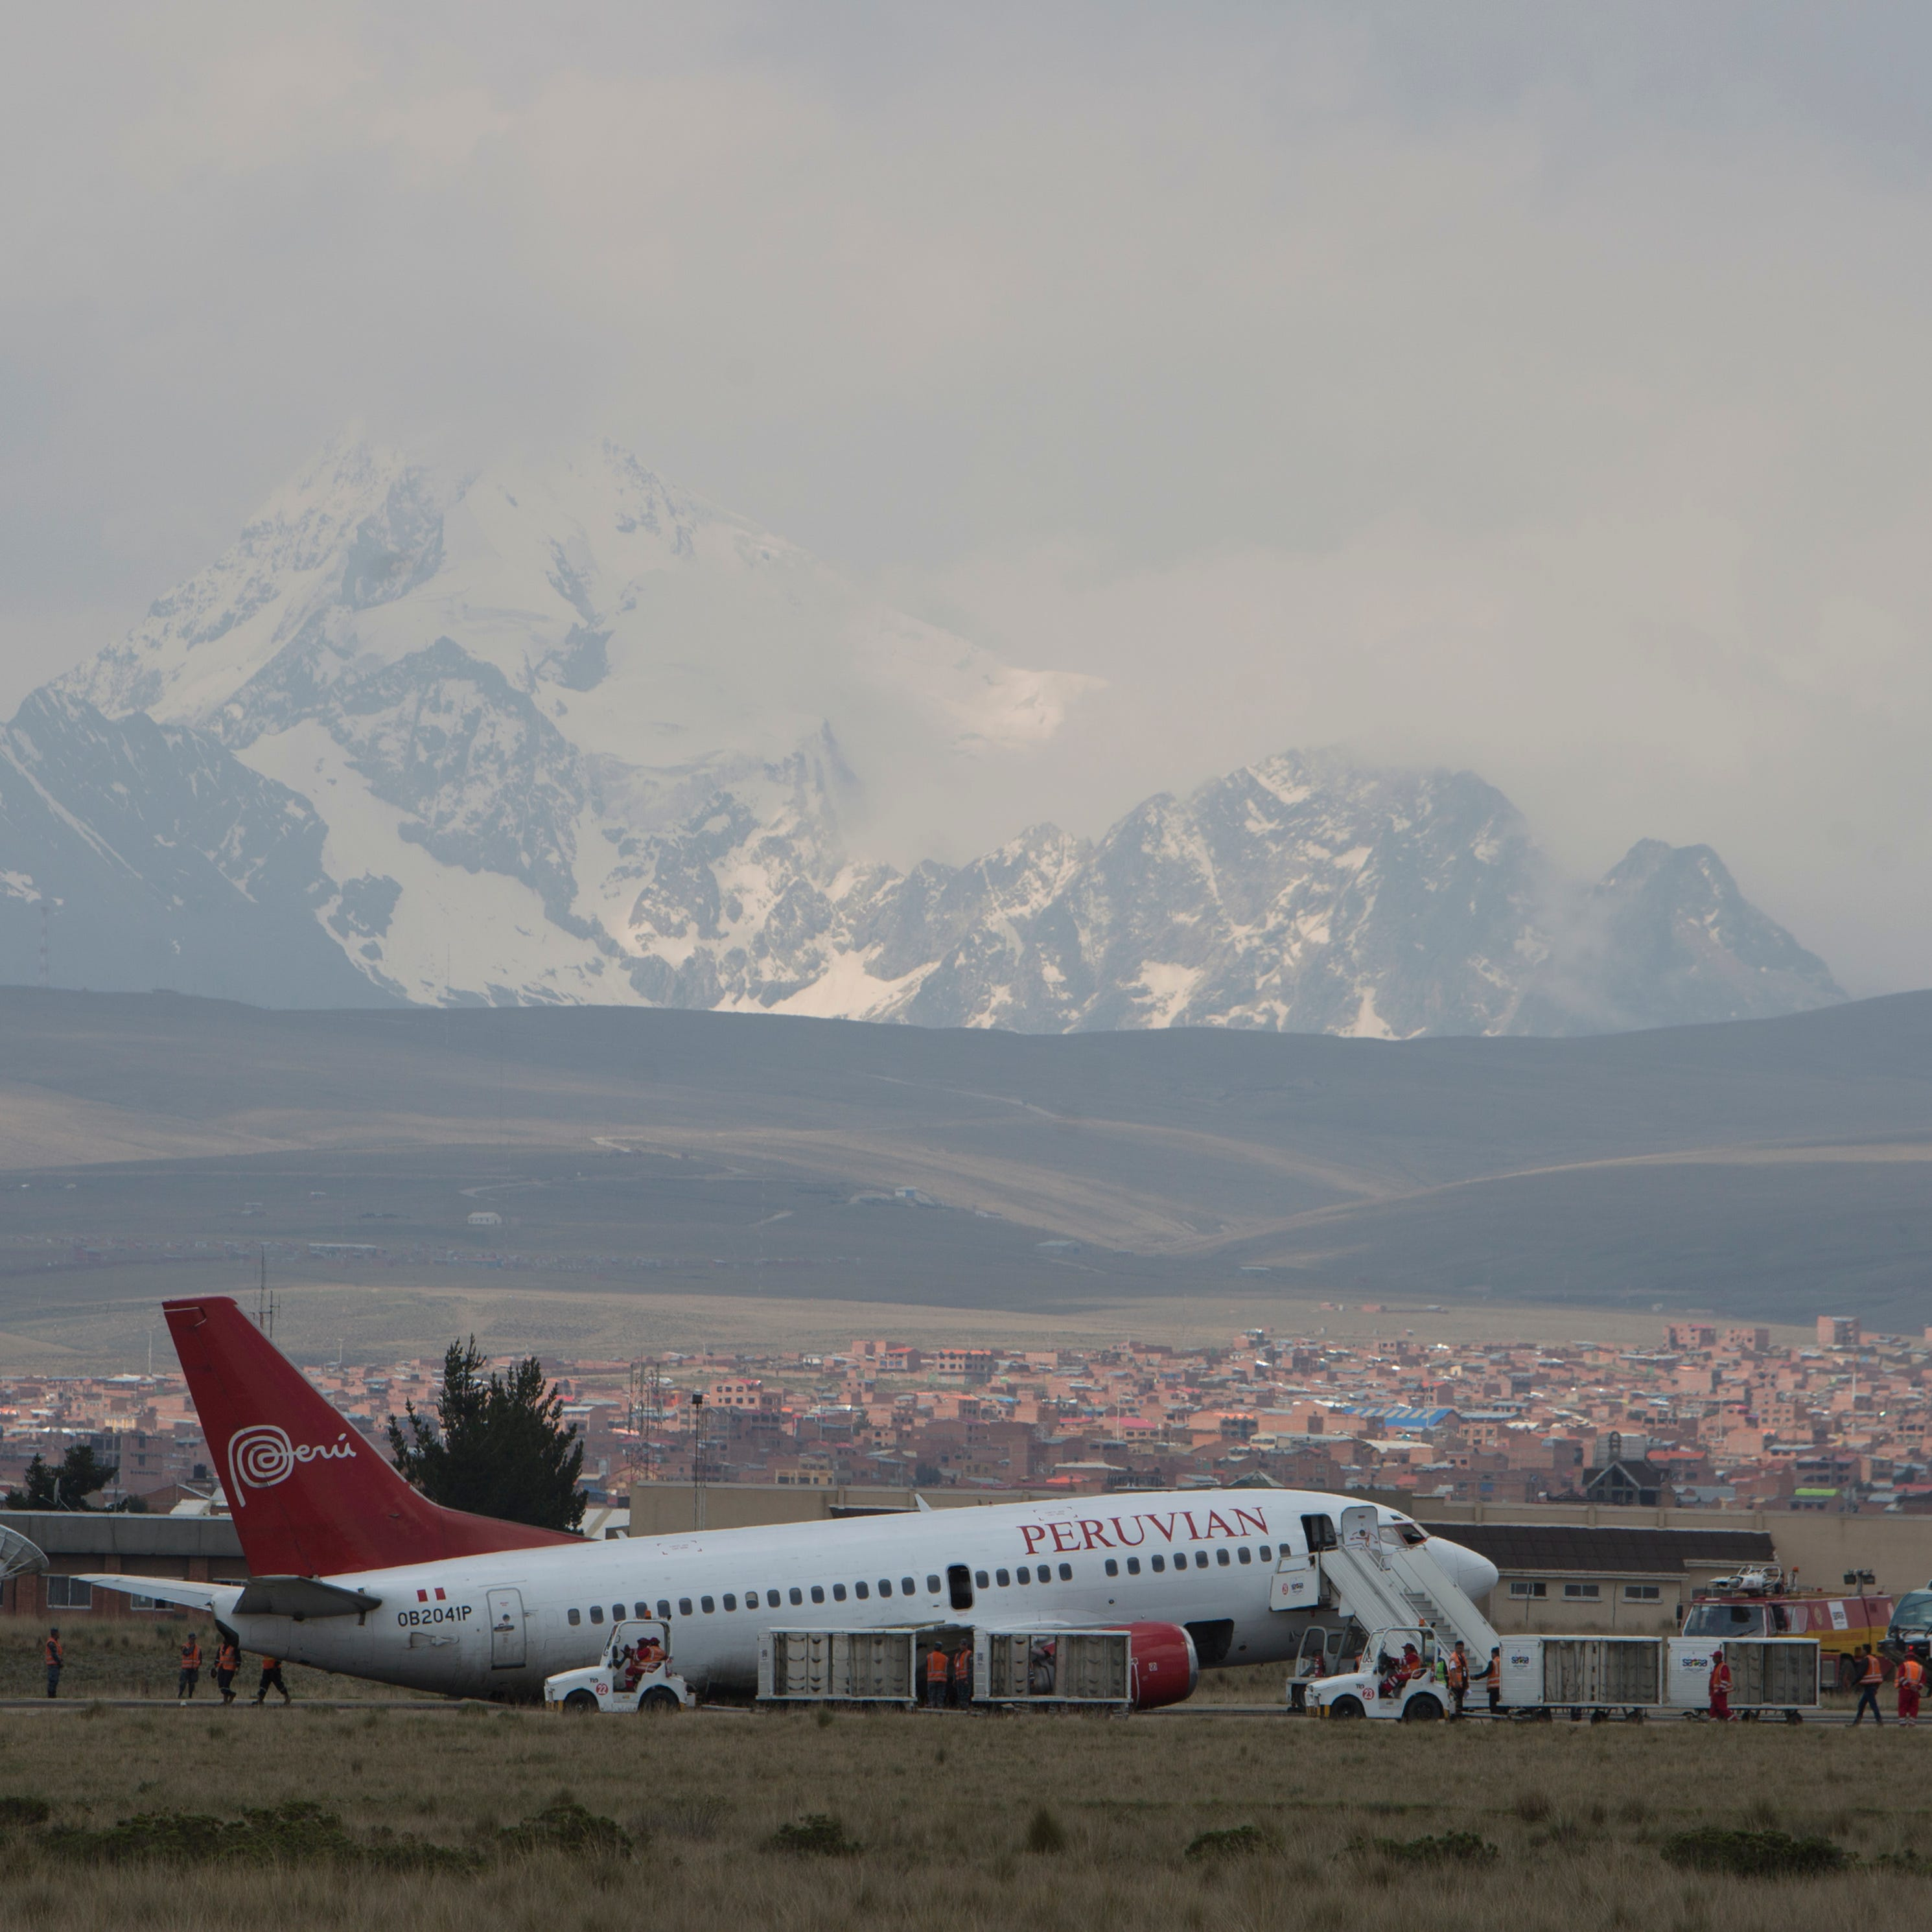 Landing gear collapse as plane lands in Bolivia